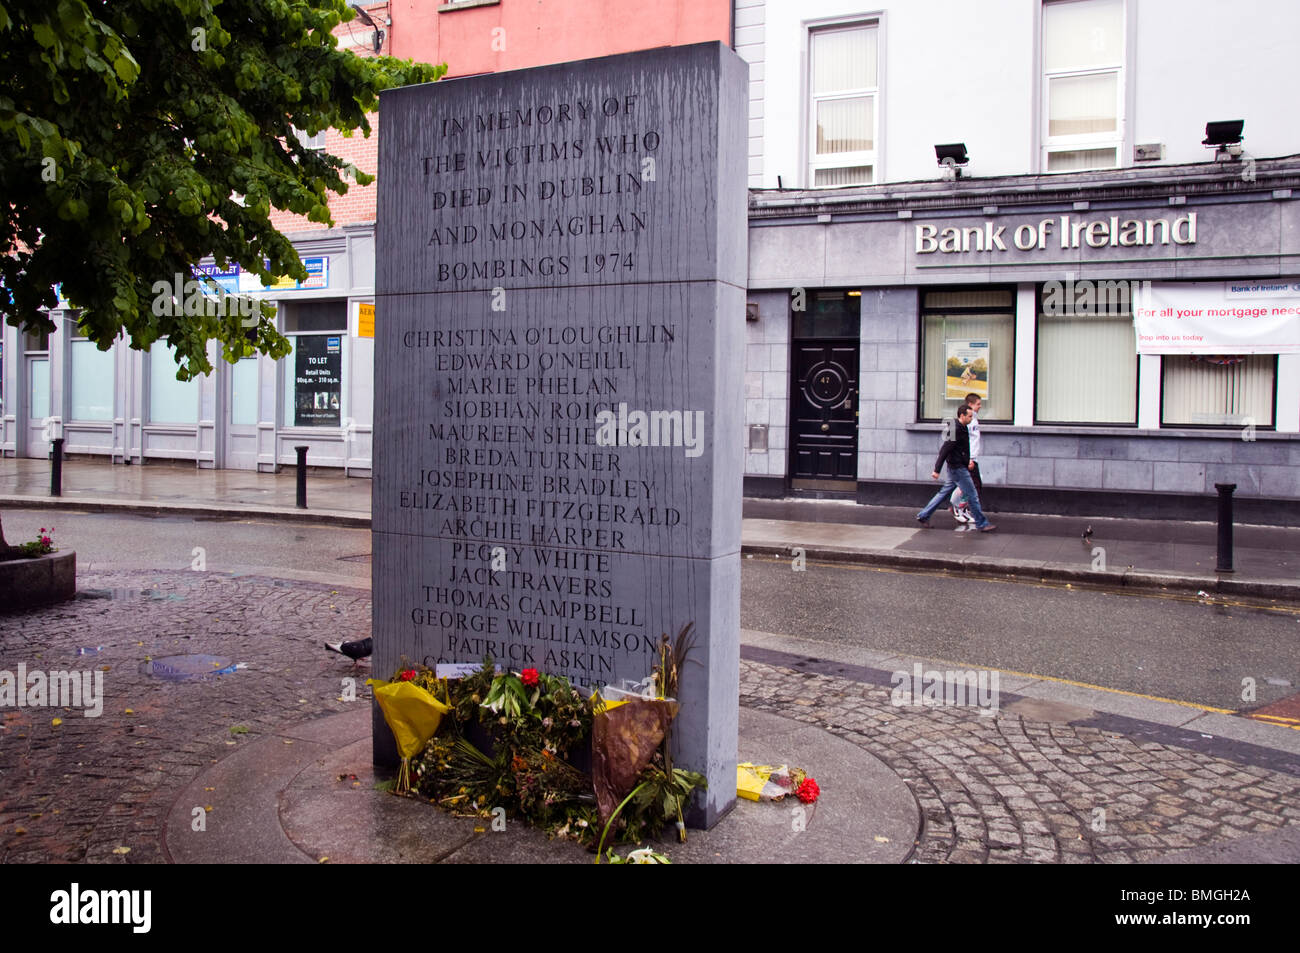 Memorial to those killed in terrorist bombings in Monaghan and Dublin in 1974 - Stock Image